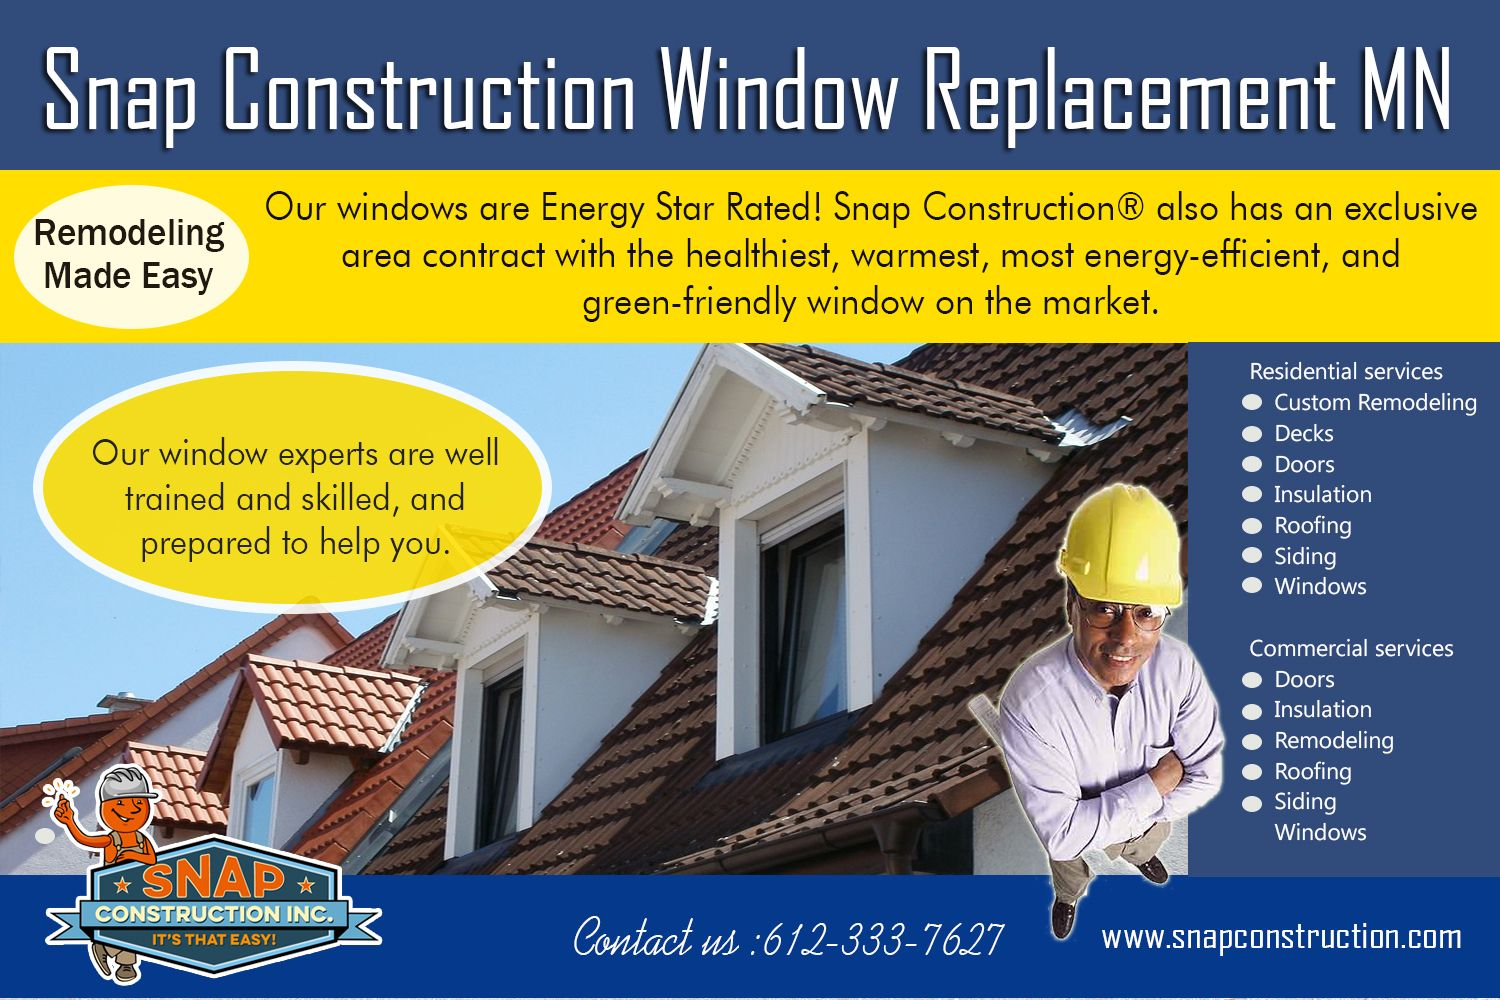 If You Re A Homeowner And Want To Have A Roof Installed At A Reasonable Price Asphalt Shingles Roofs Are An I Roof Shingle Colors Roof Shingles Shingle Colors